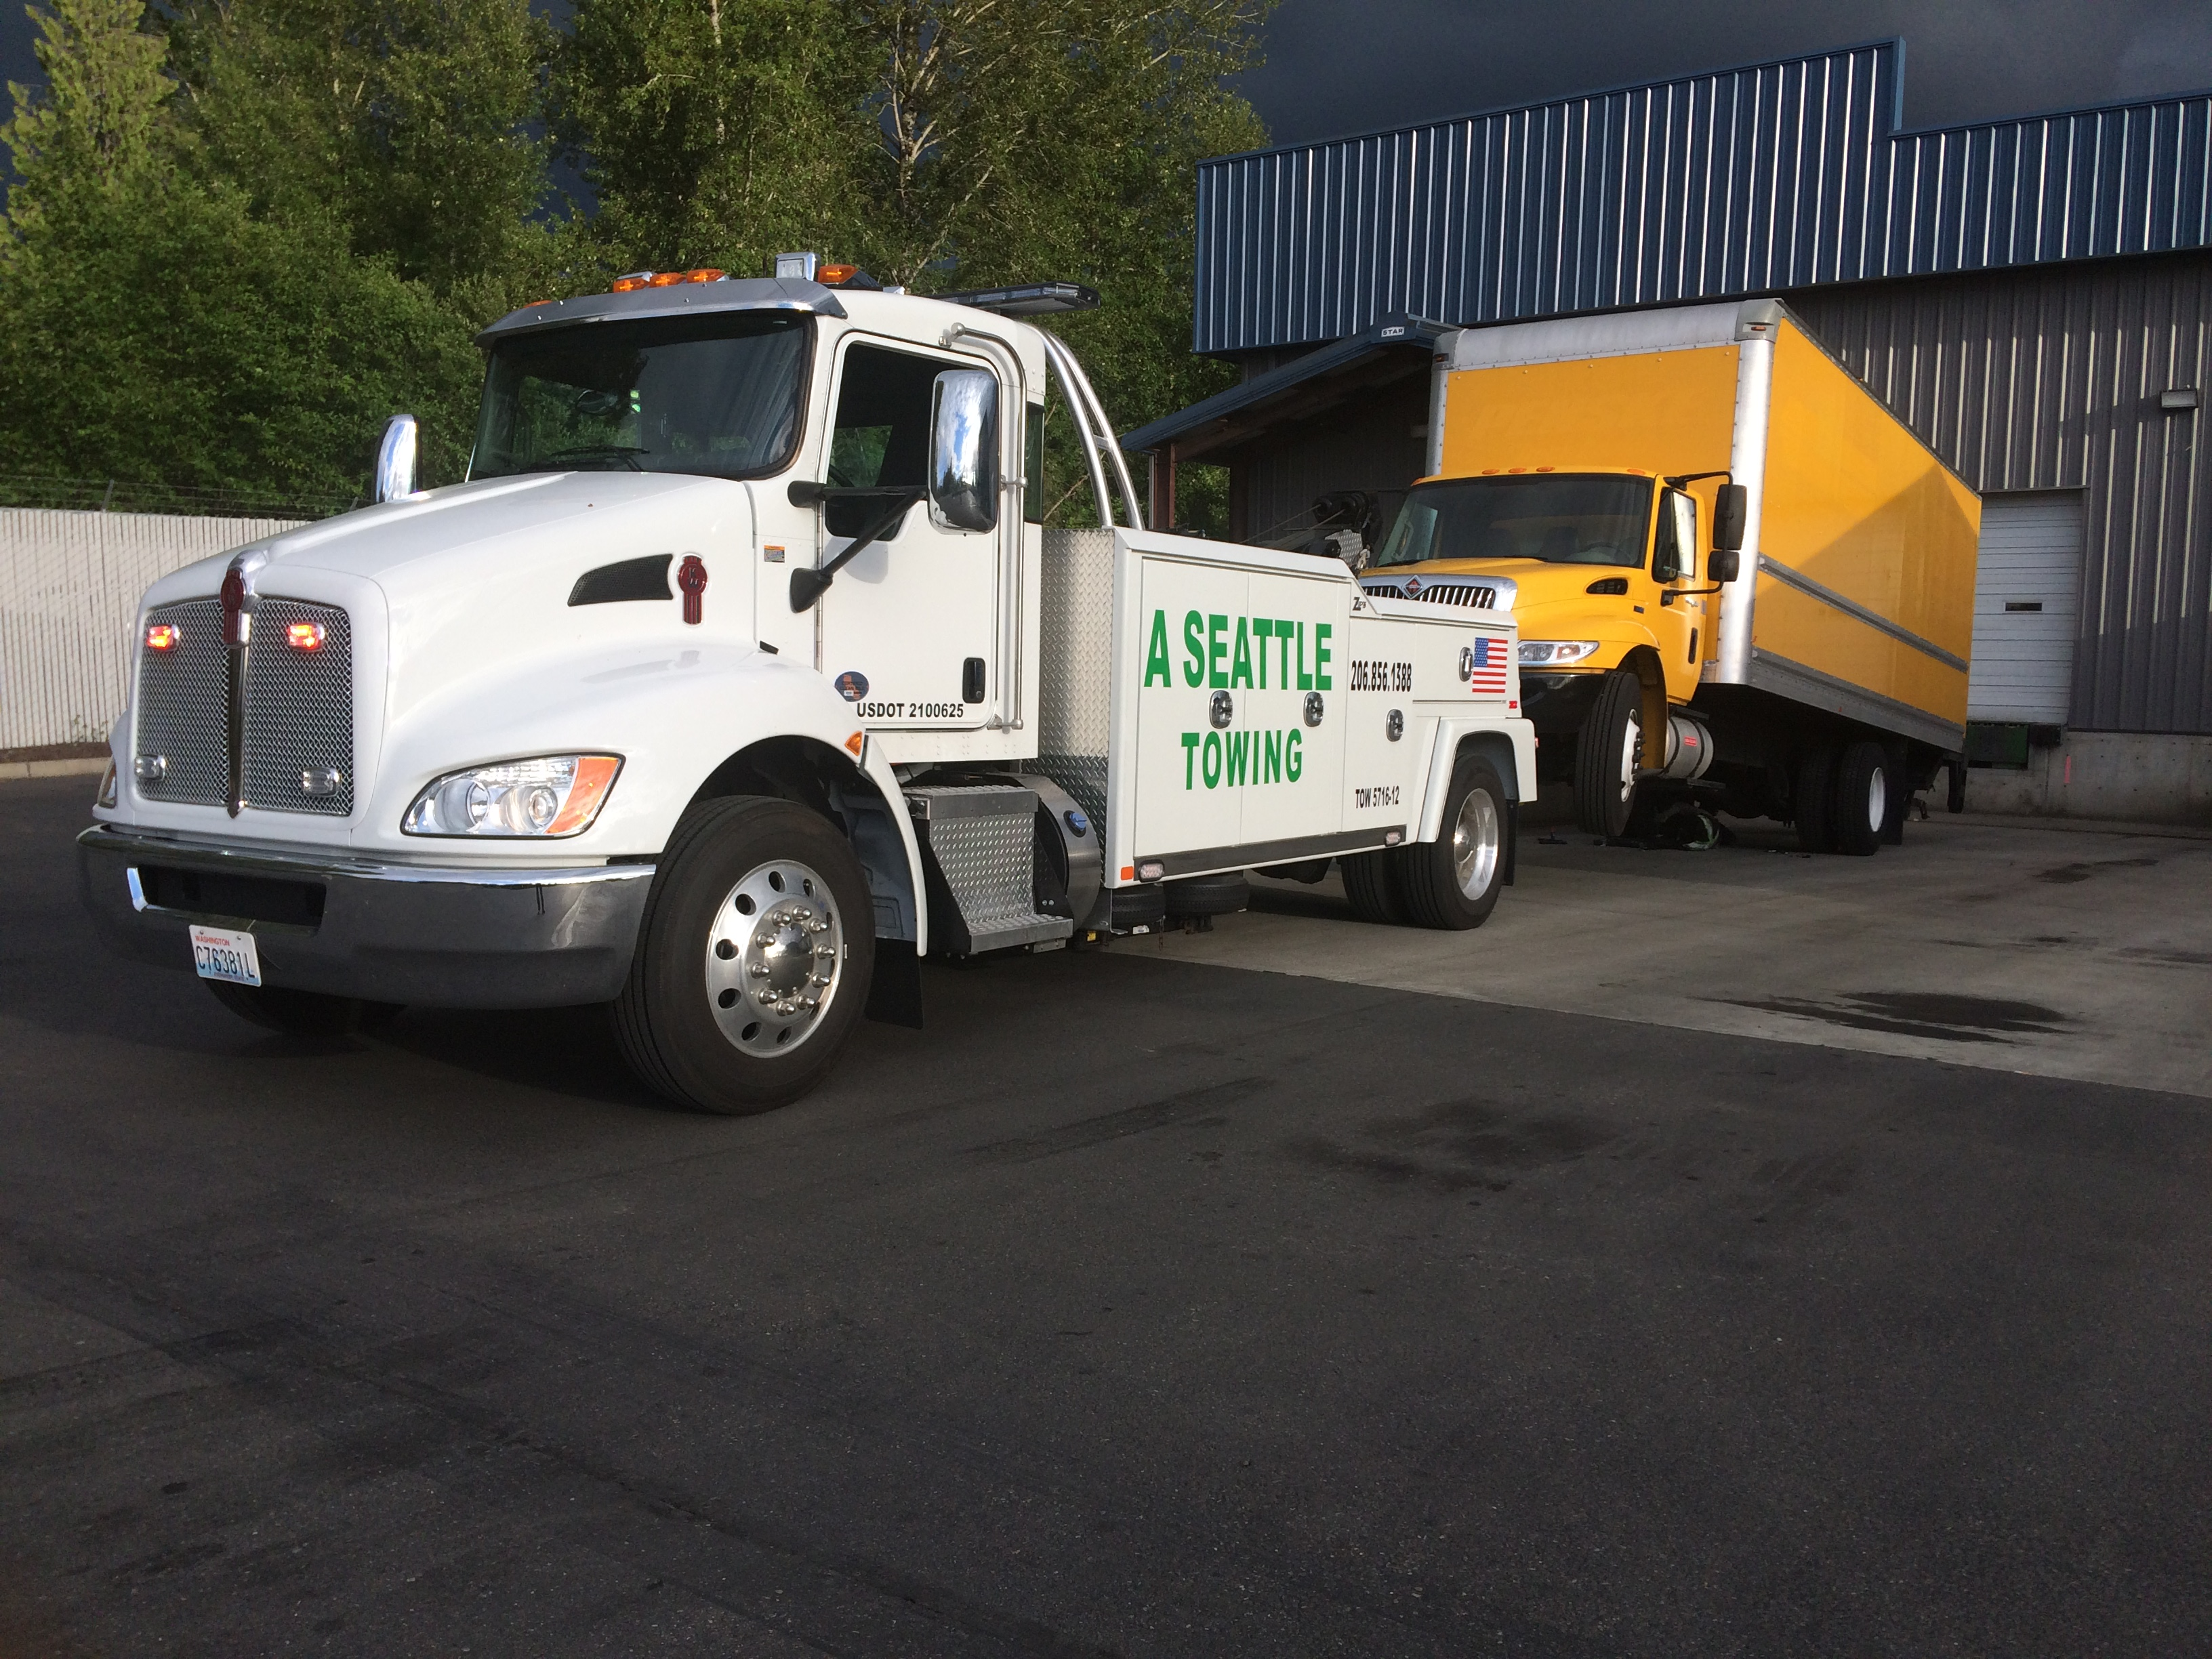 A Seattle Towing (42)